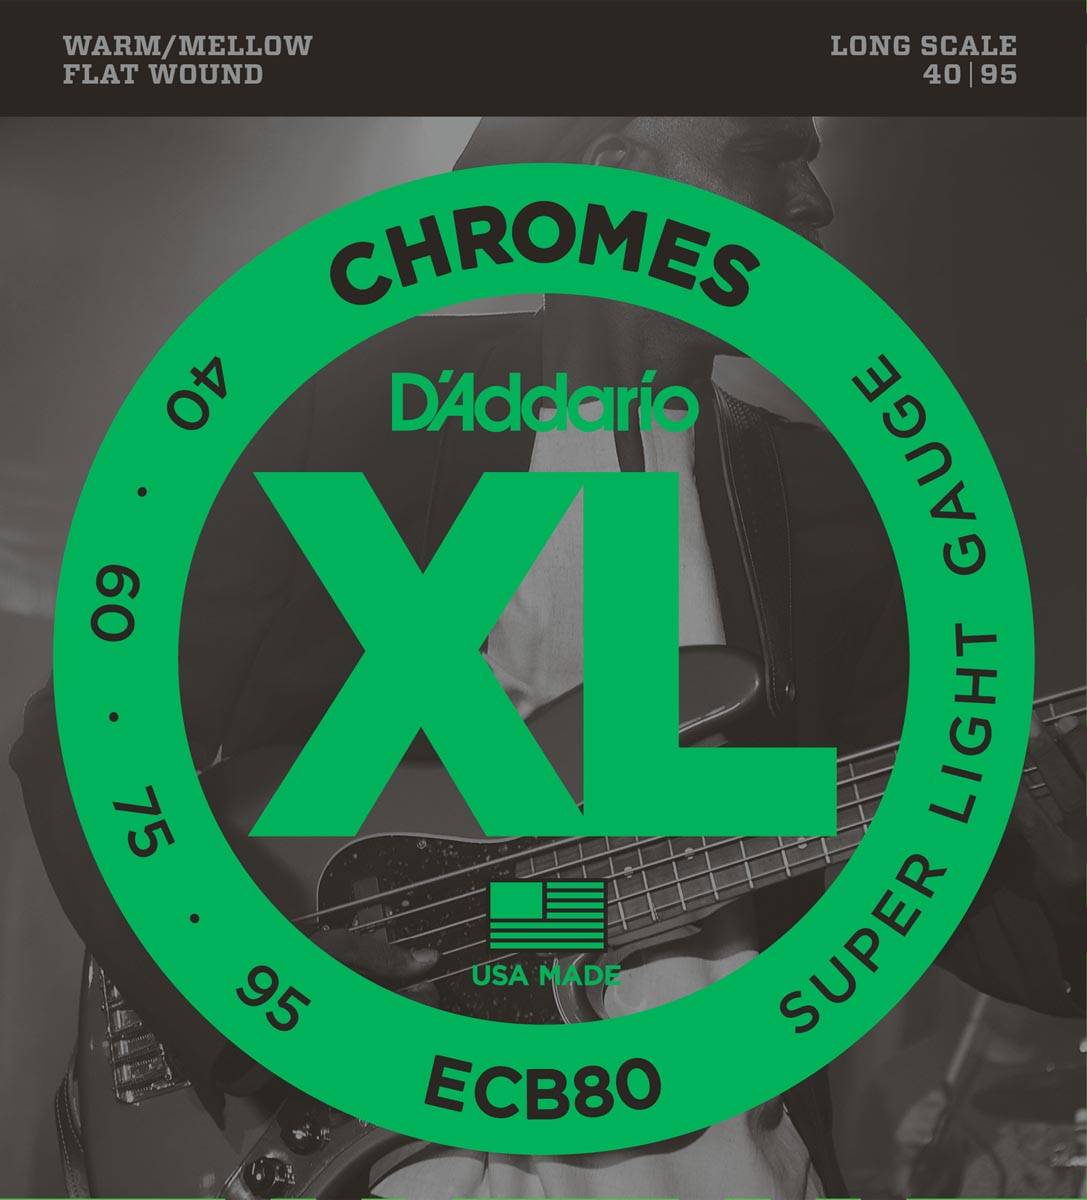 DADDARIO ECB80 CHROMES BASS, LIGHT, LONG SCALE [40-95]